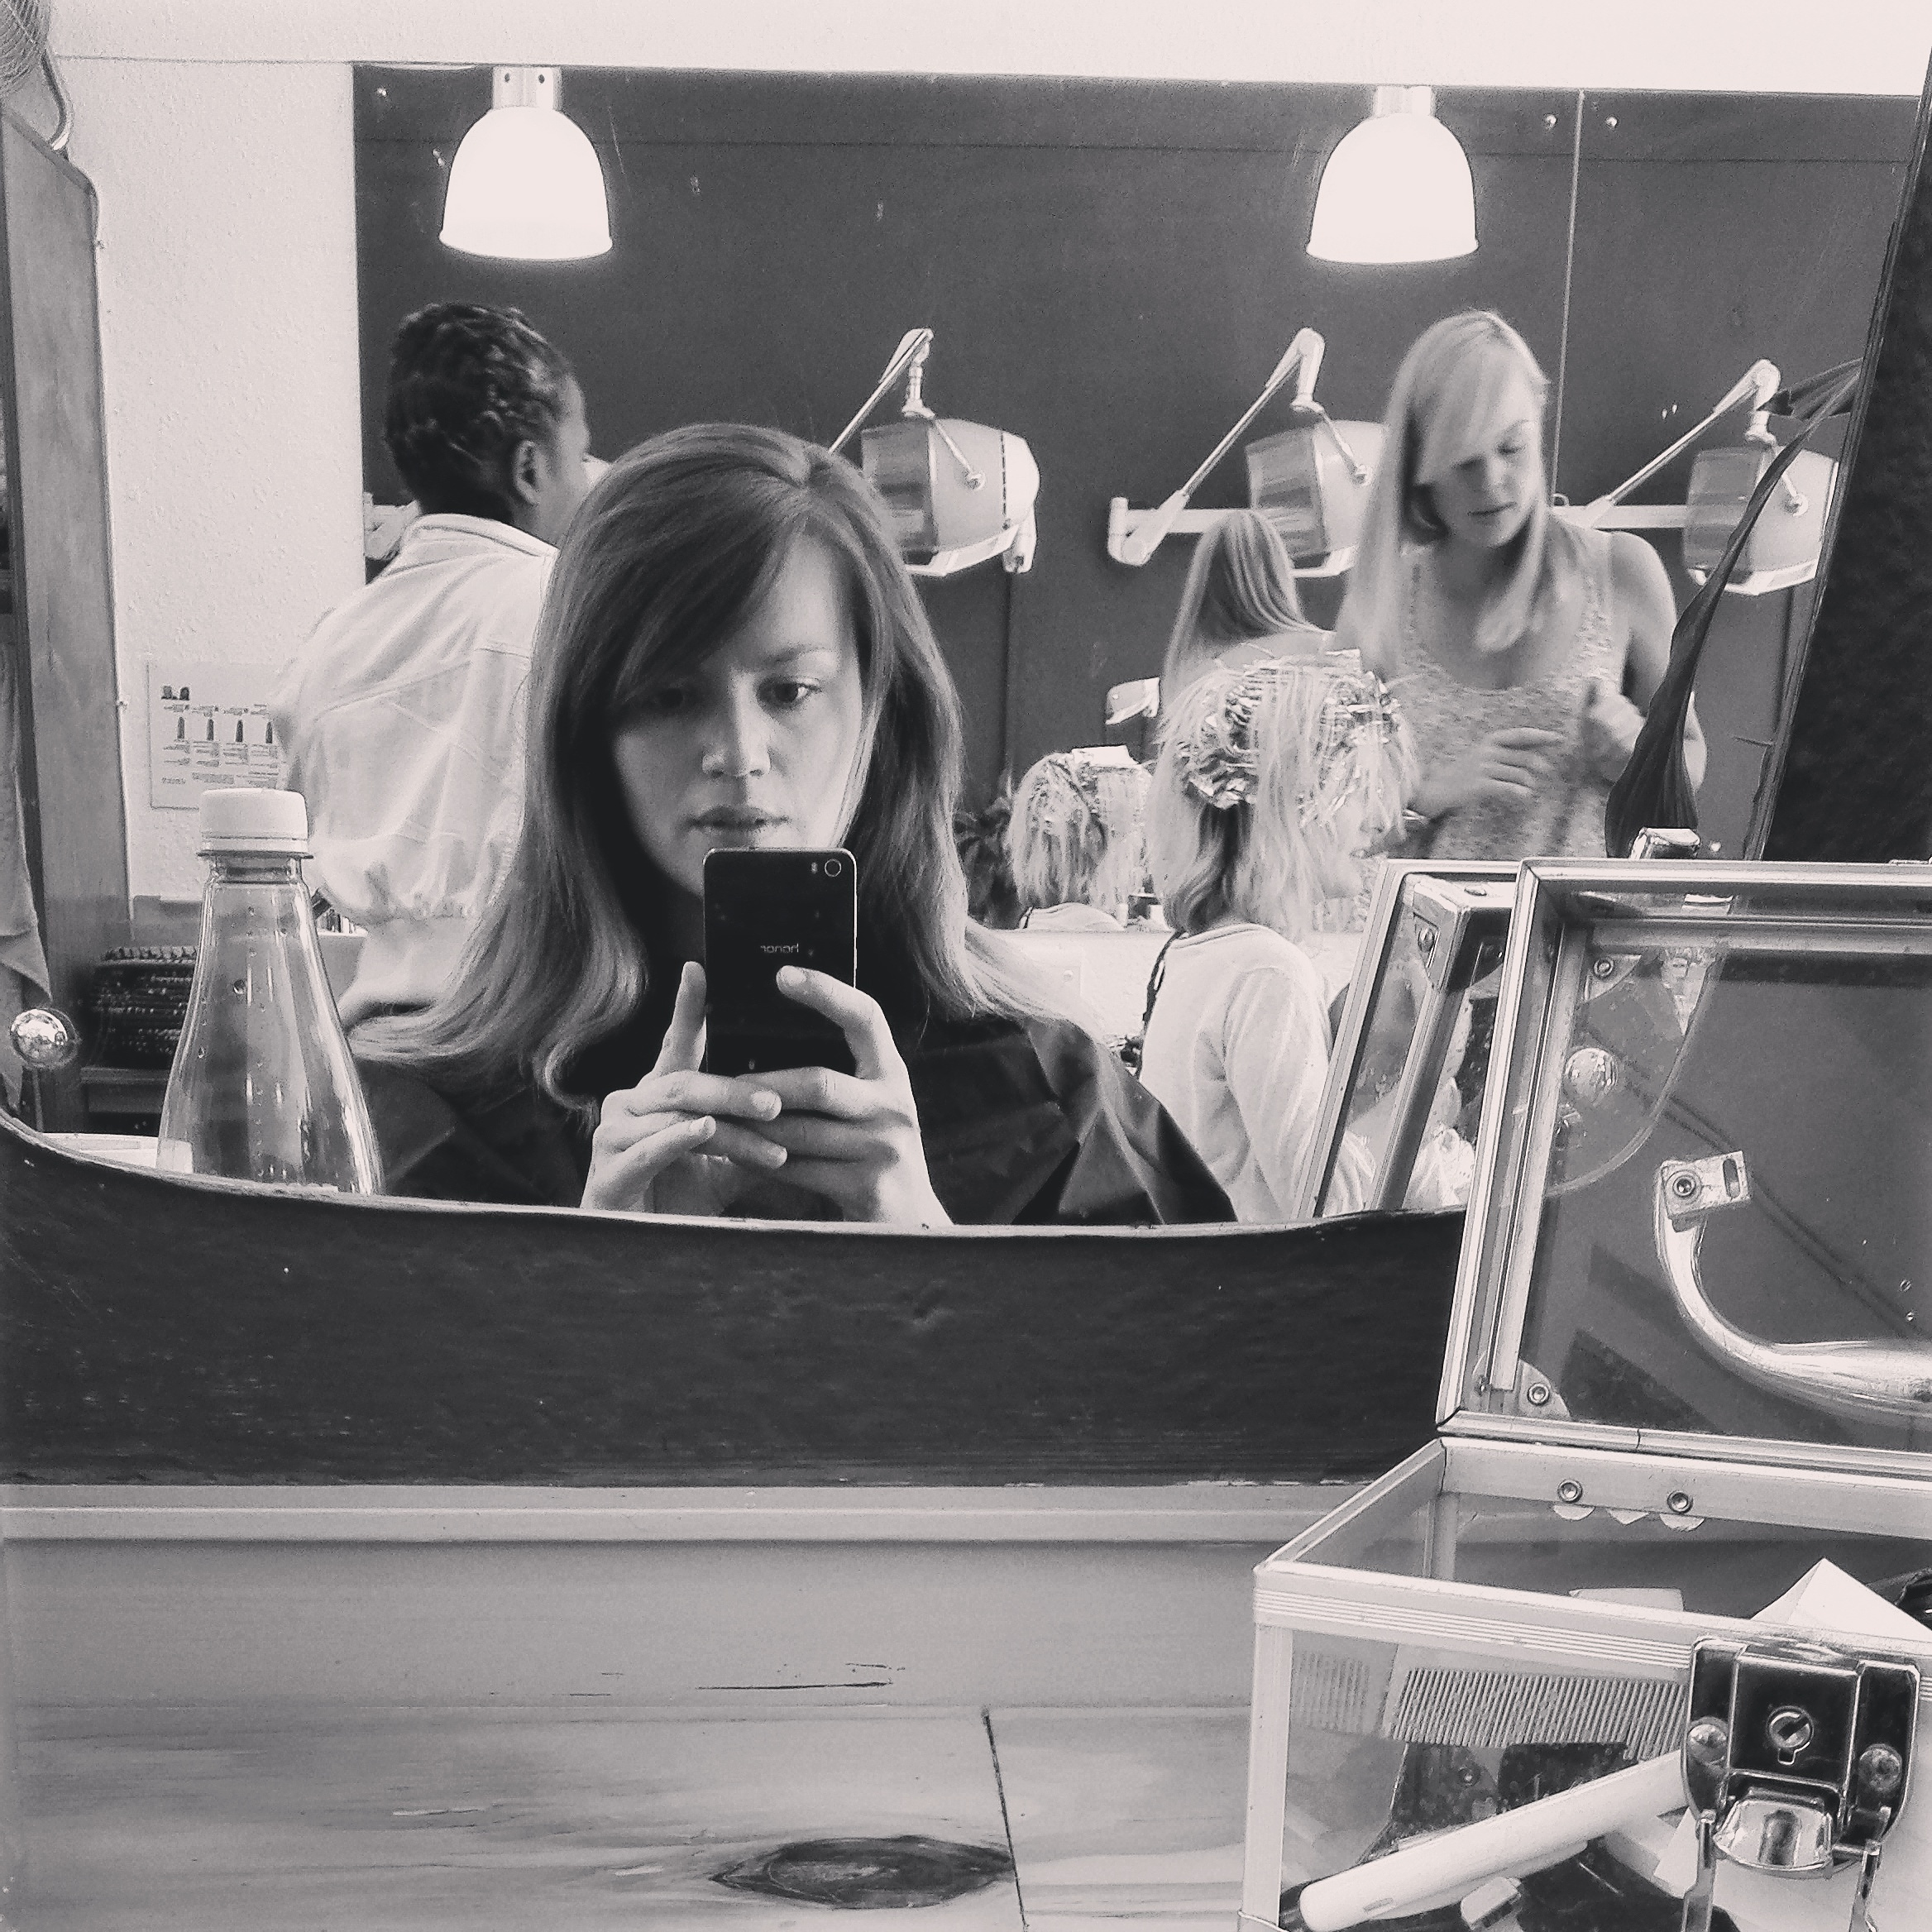 Hair dresser time - Stijlmeisje